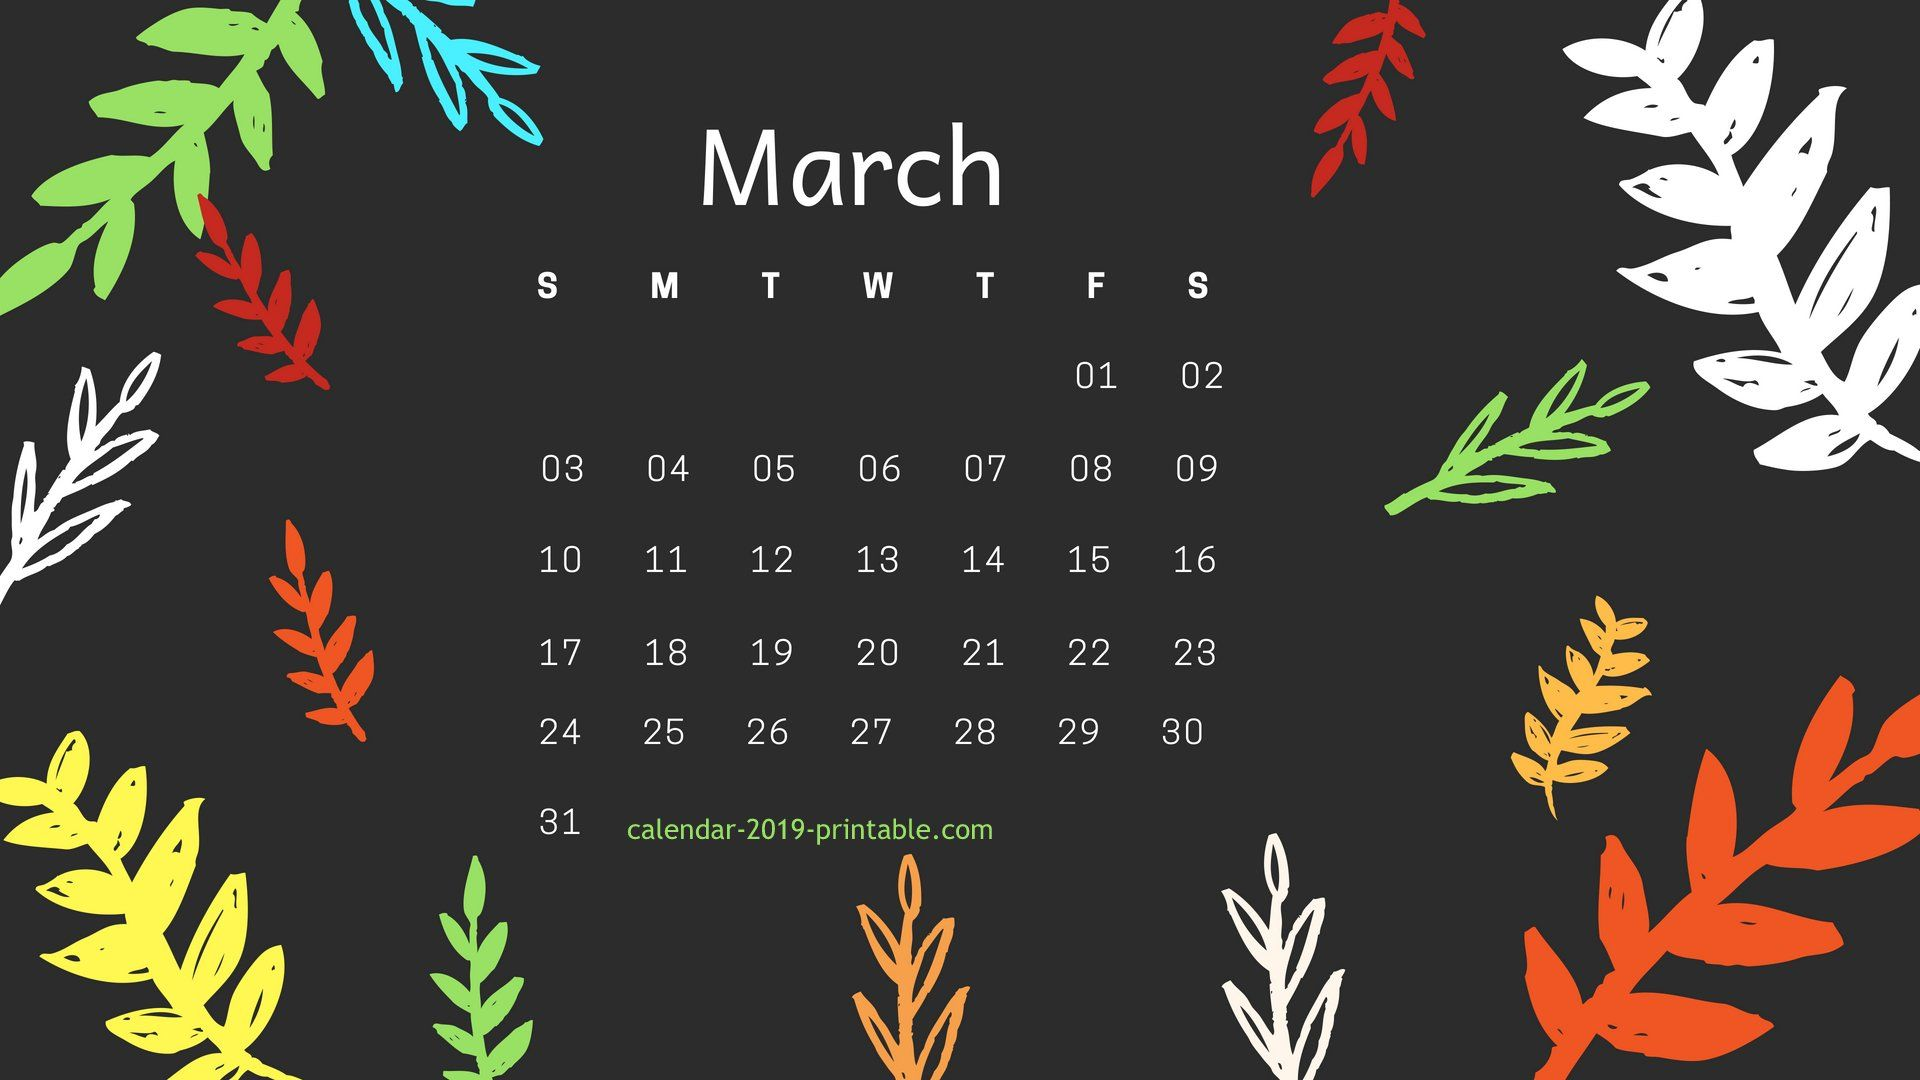 march 2019 hd calendar wallpaper Desktop wallpaper calendar 1920x1080